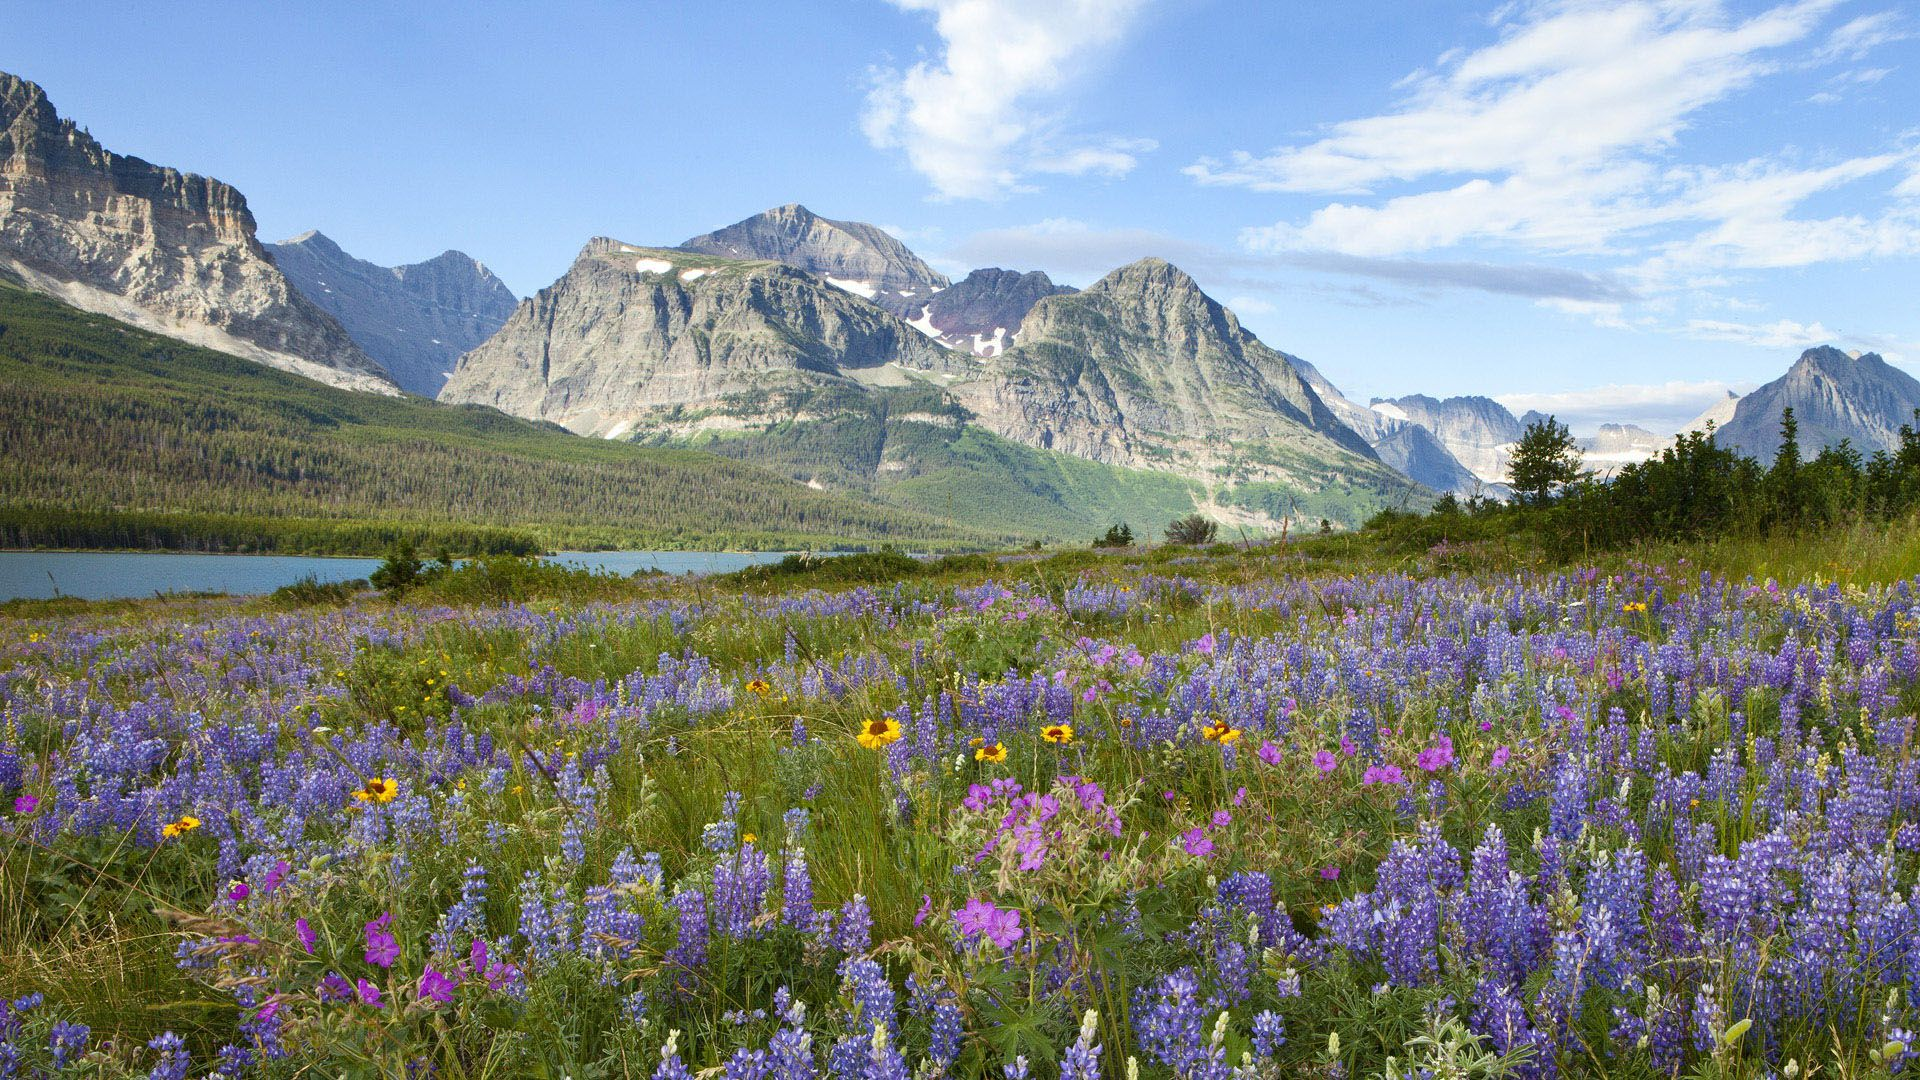 Glacier National Park Wildflowers 1920x1080 Hd Wallpaper